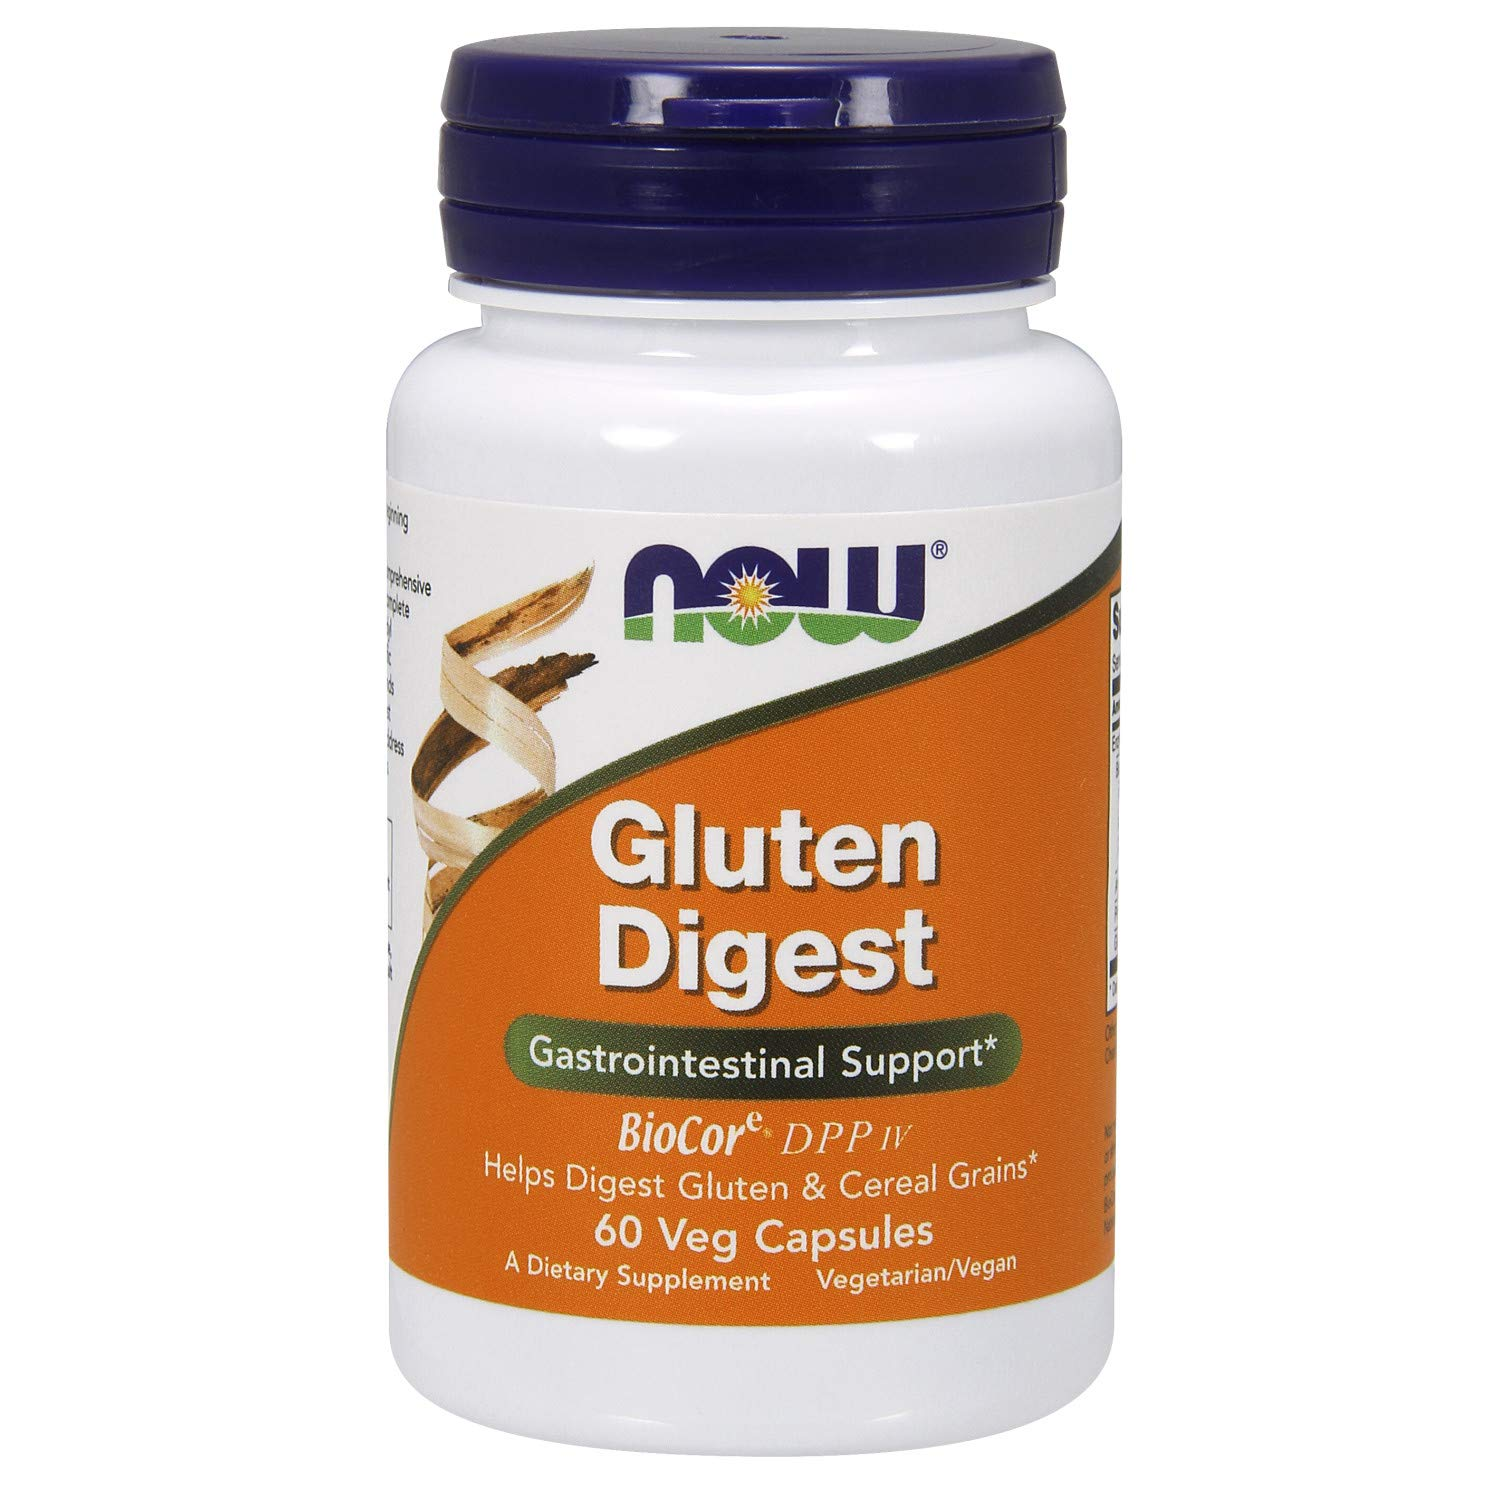 NOW Supplements, Gluten Digest with BioCore DPP IV, 60 Veg Capsules by NOW